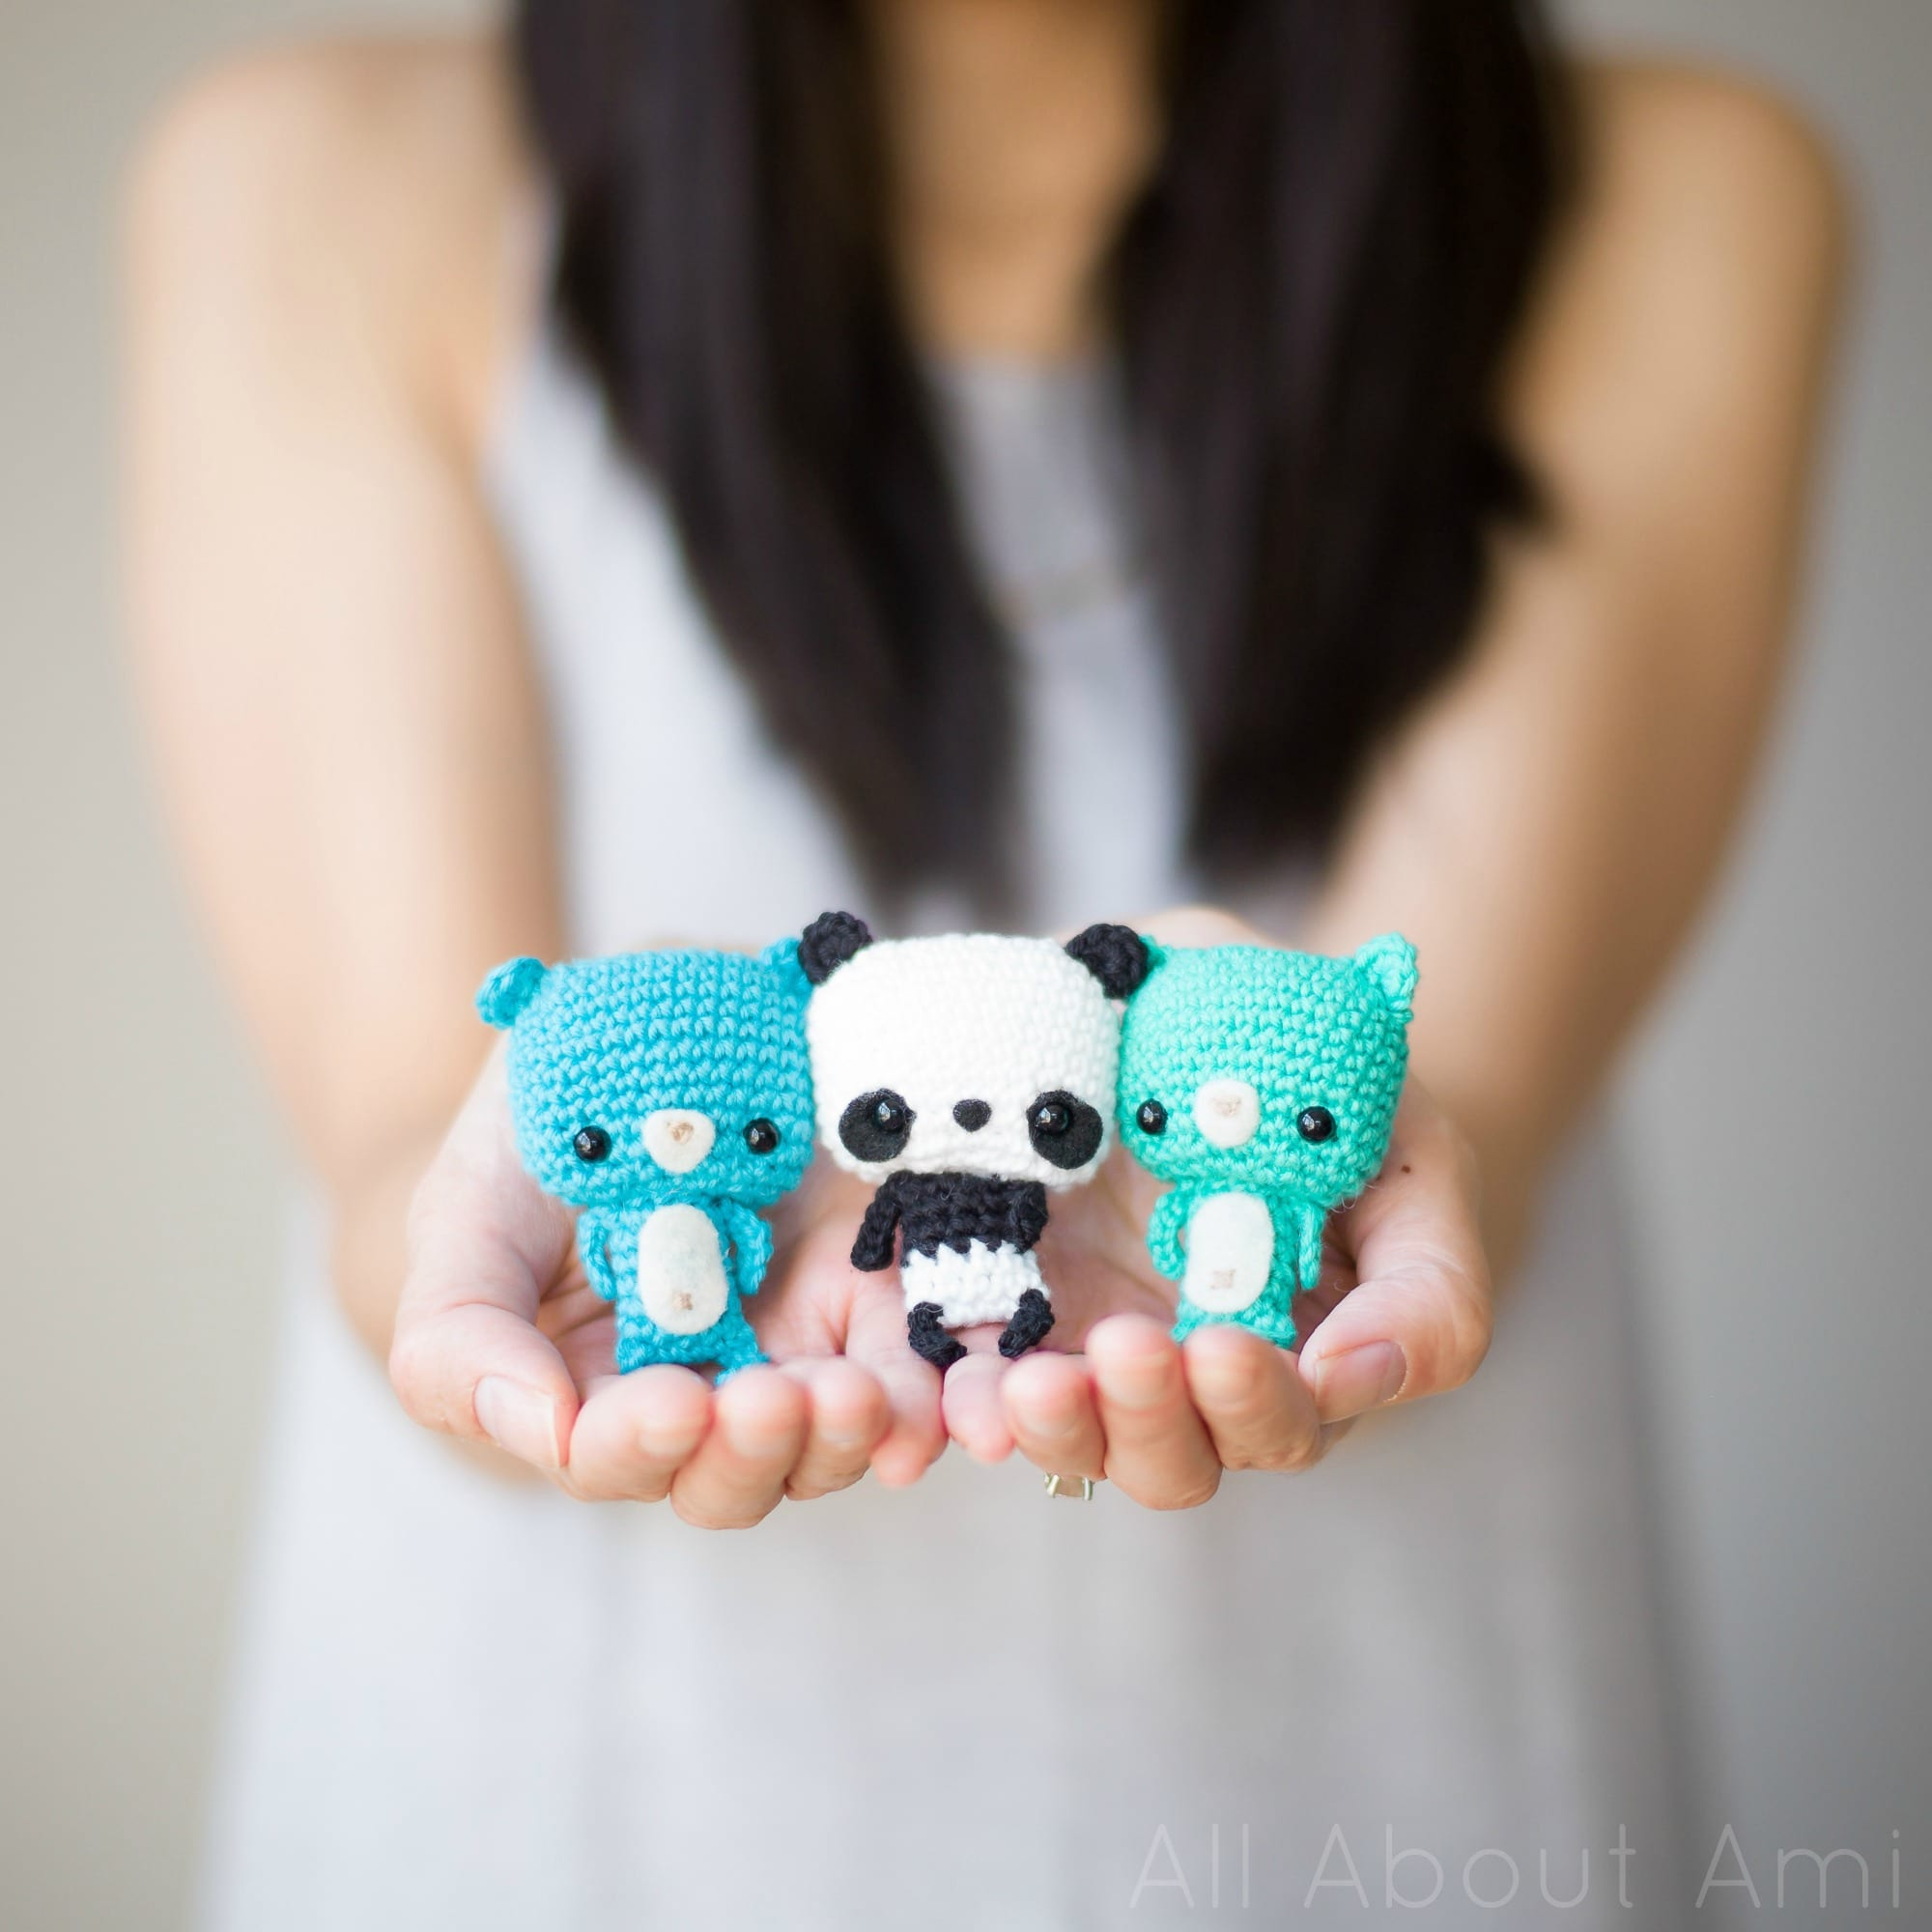 CROCHET PATTERN: We Bare Bears Inspired Baby Bear | We bare bears ... | 2000x2000